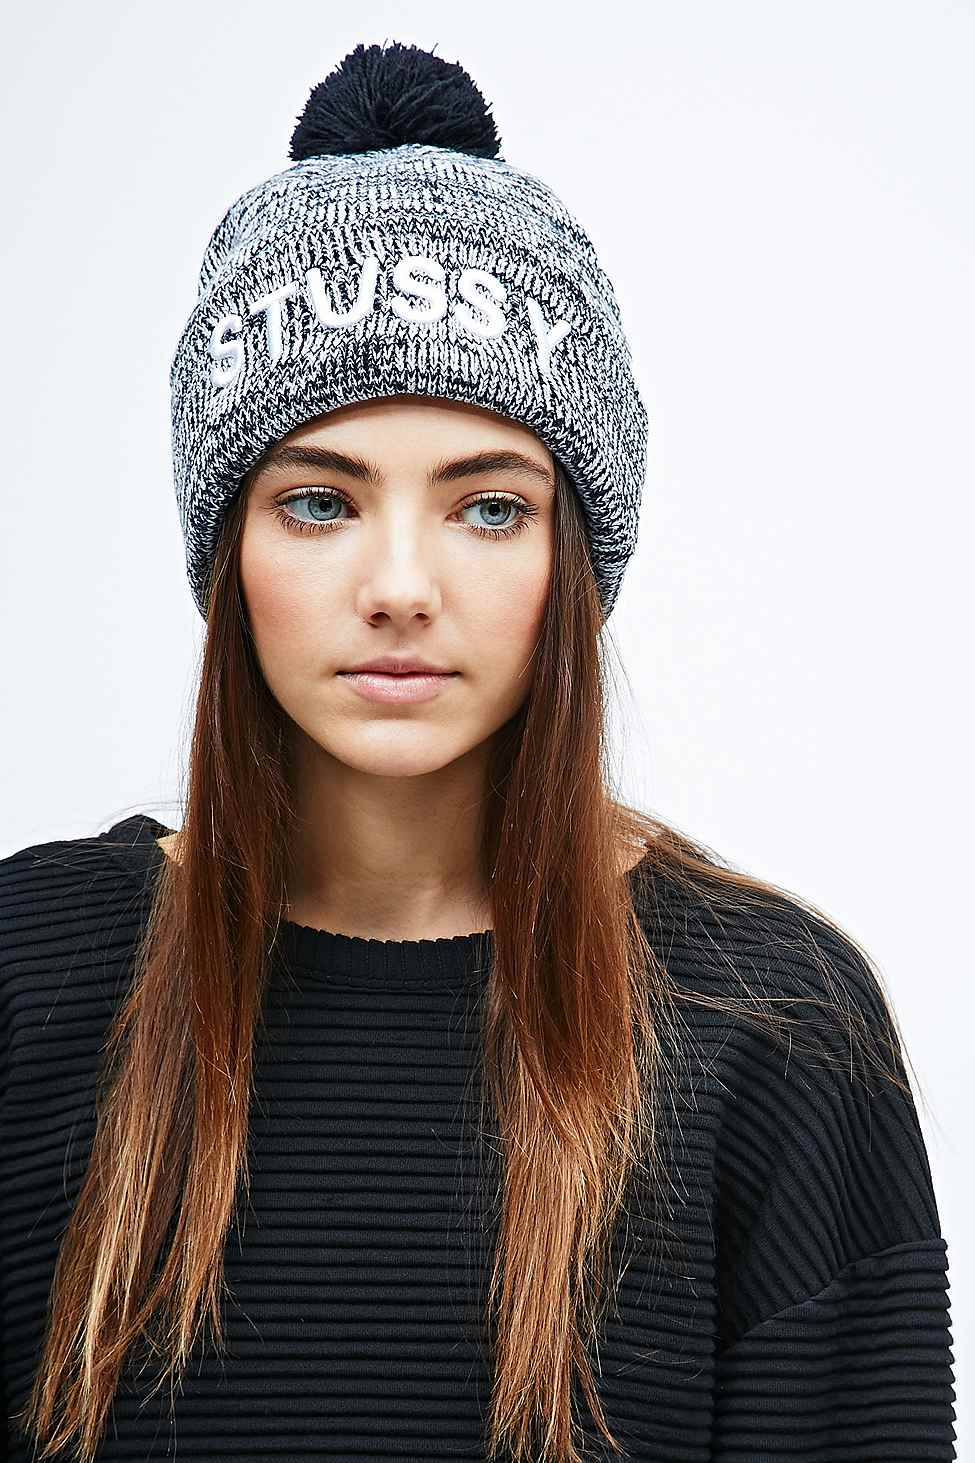 Stussy Marble Pom Pom Beanie in Grey and Black in Gray - Lyst 9d79366db9e